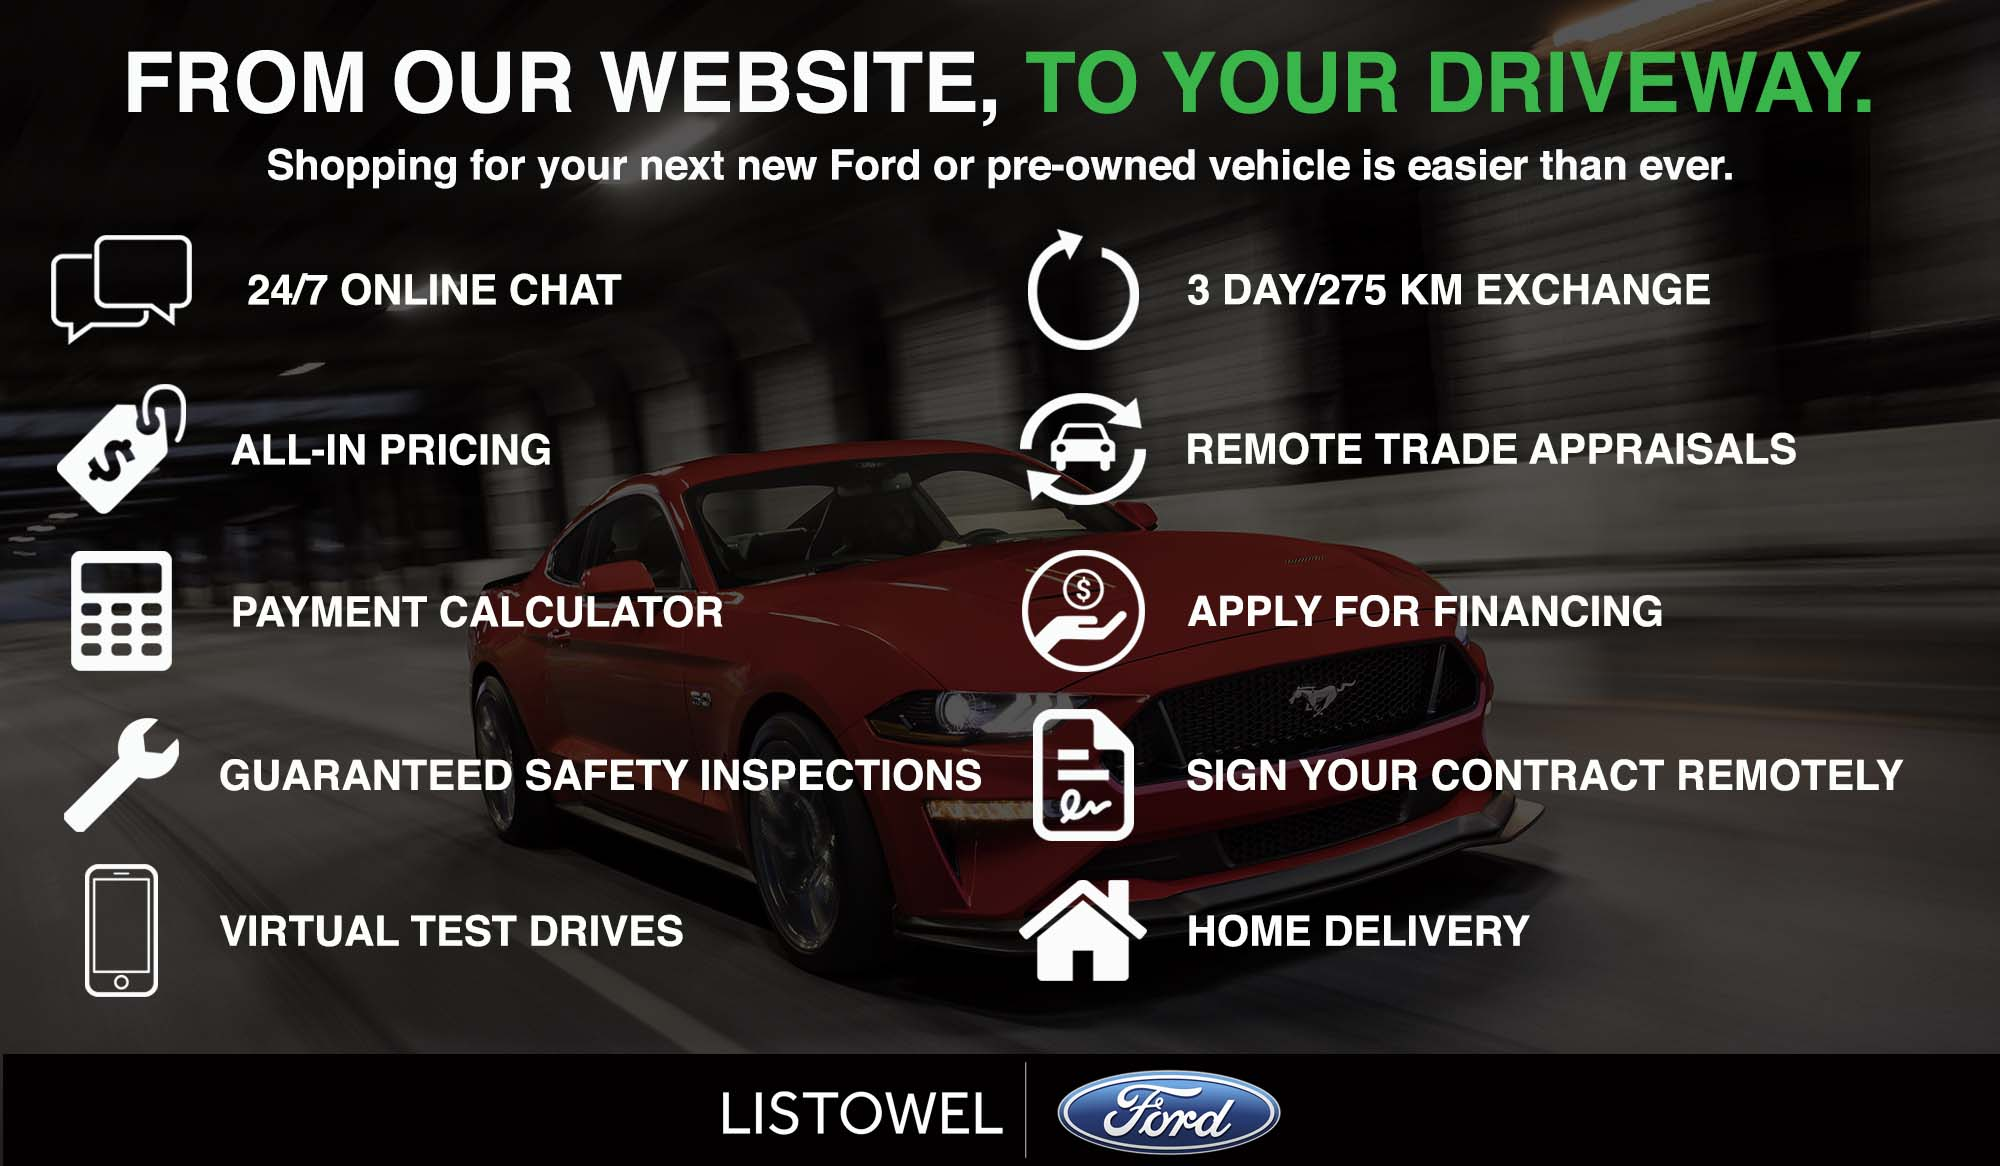 Why Buy Your New Car Online With Listowel Ford